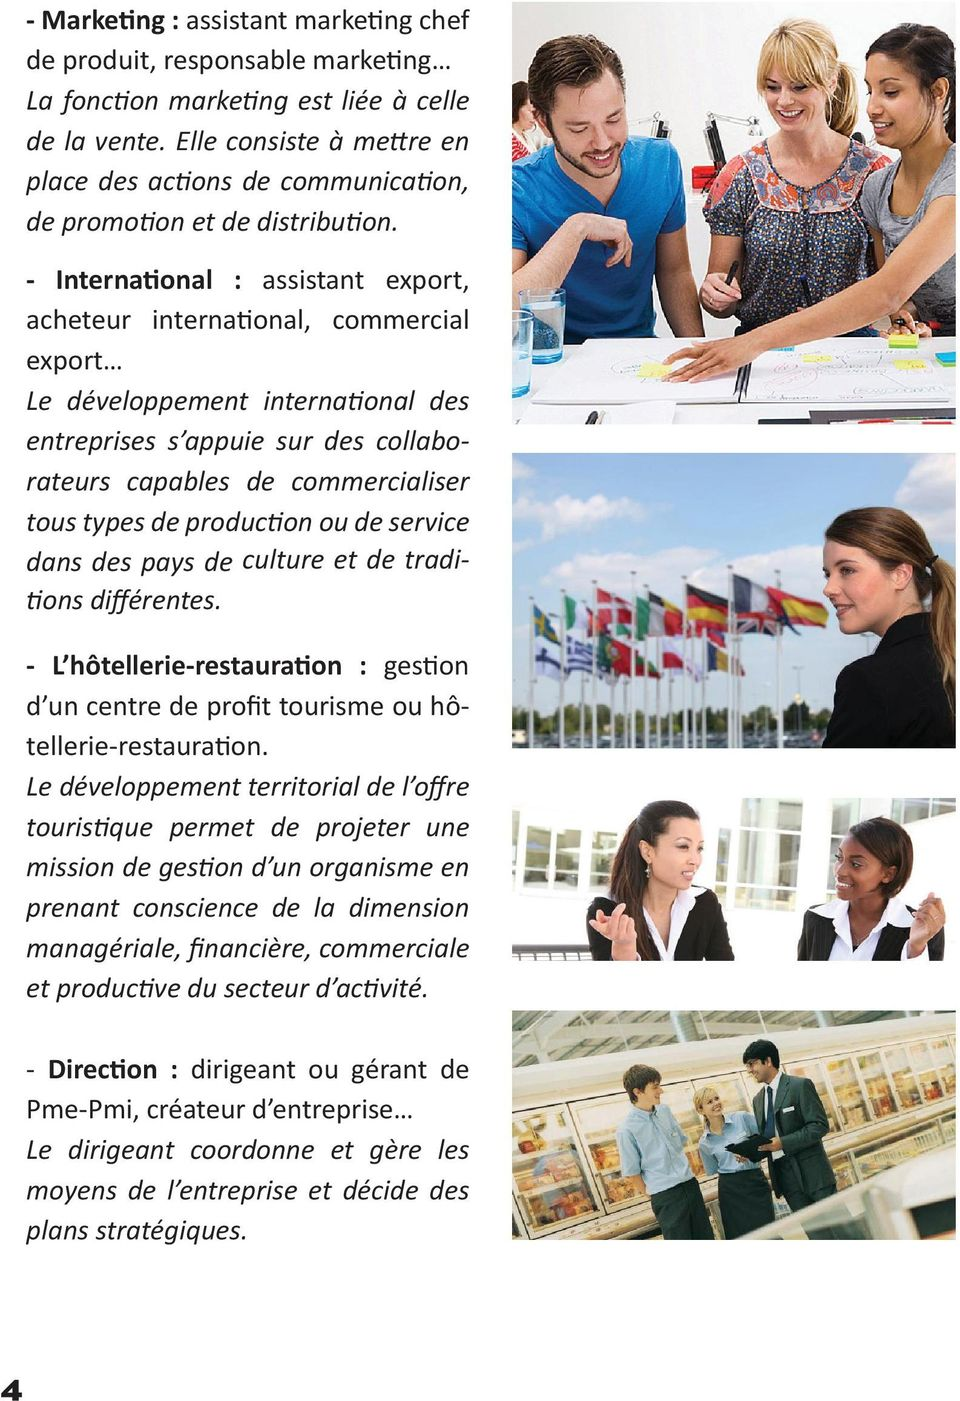 - International : assistant export, acheteur international, commercial export Le développement international des entreprises s appuie sur des collaborateurs capables de commercialiser tous types de